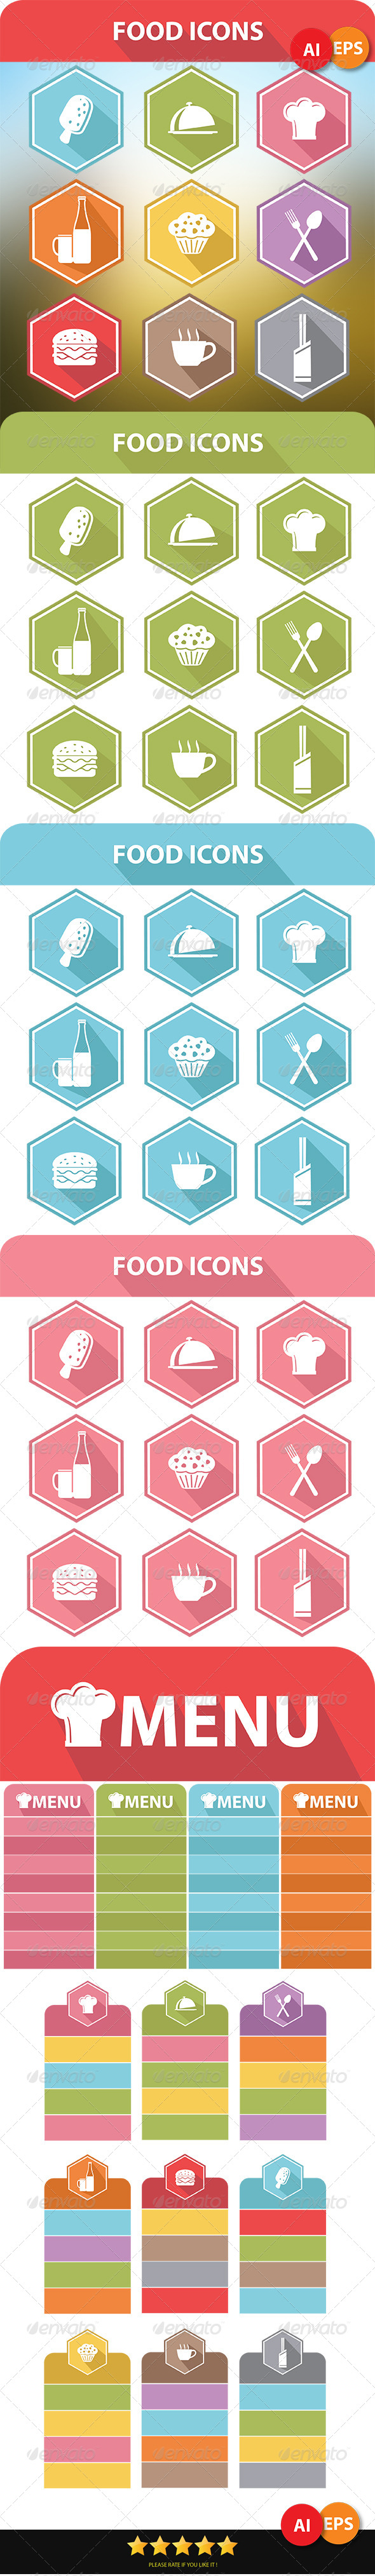 9 Food Icons & Menu Elements - Food Objects